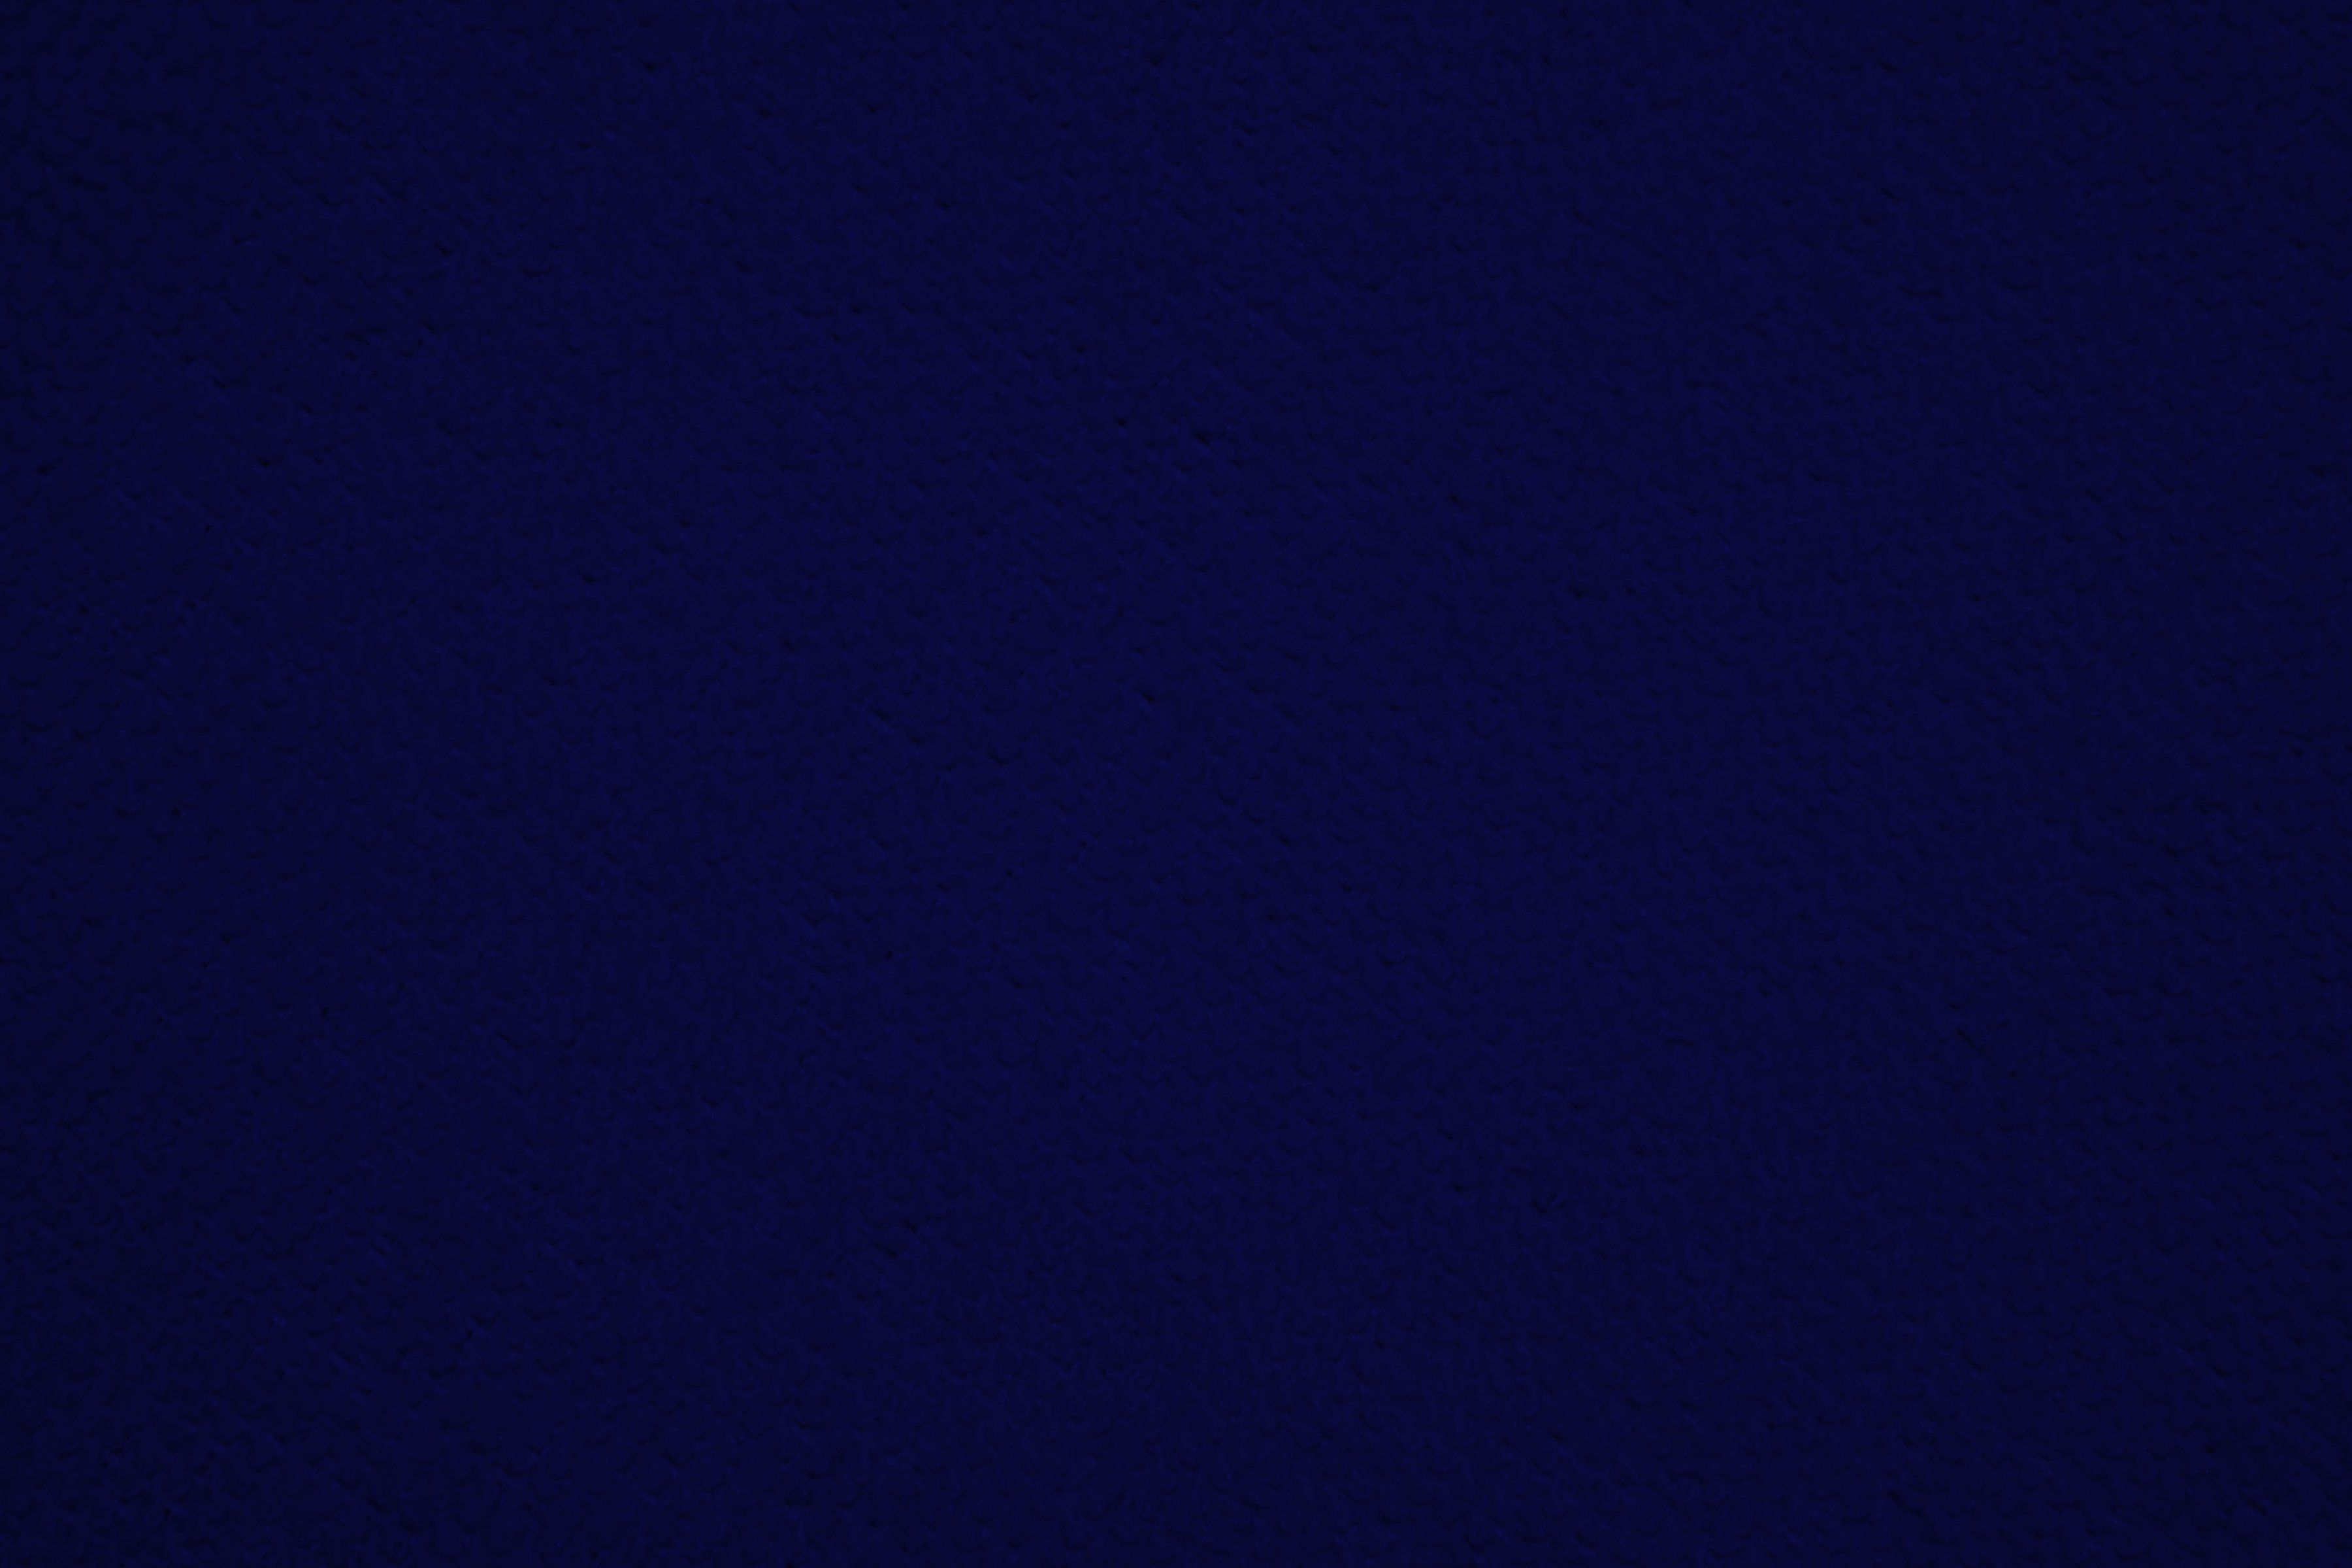 Navy Blue Backgrounds  Wallpaper Cave #7619